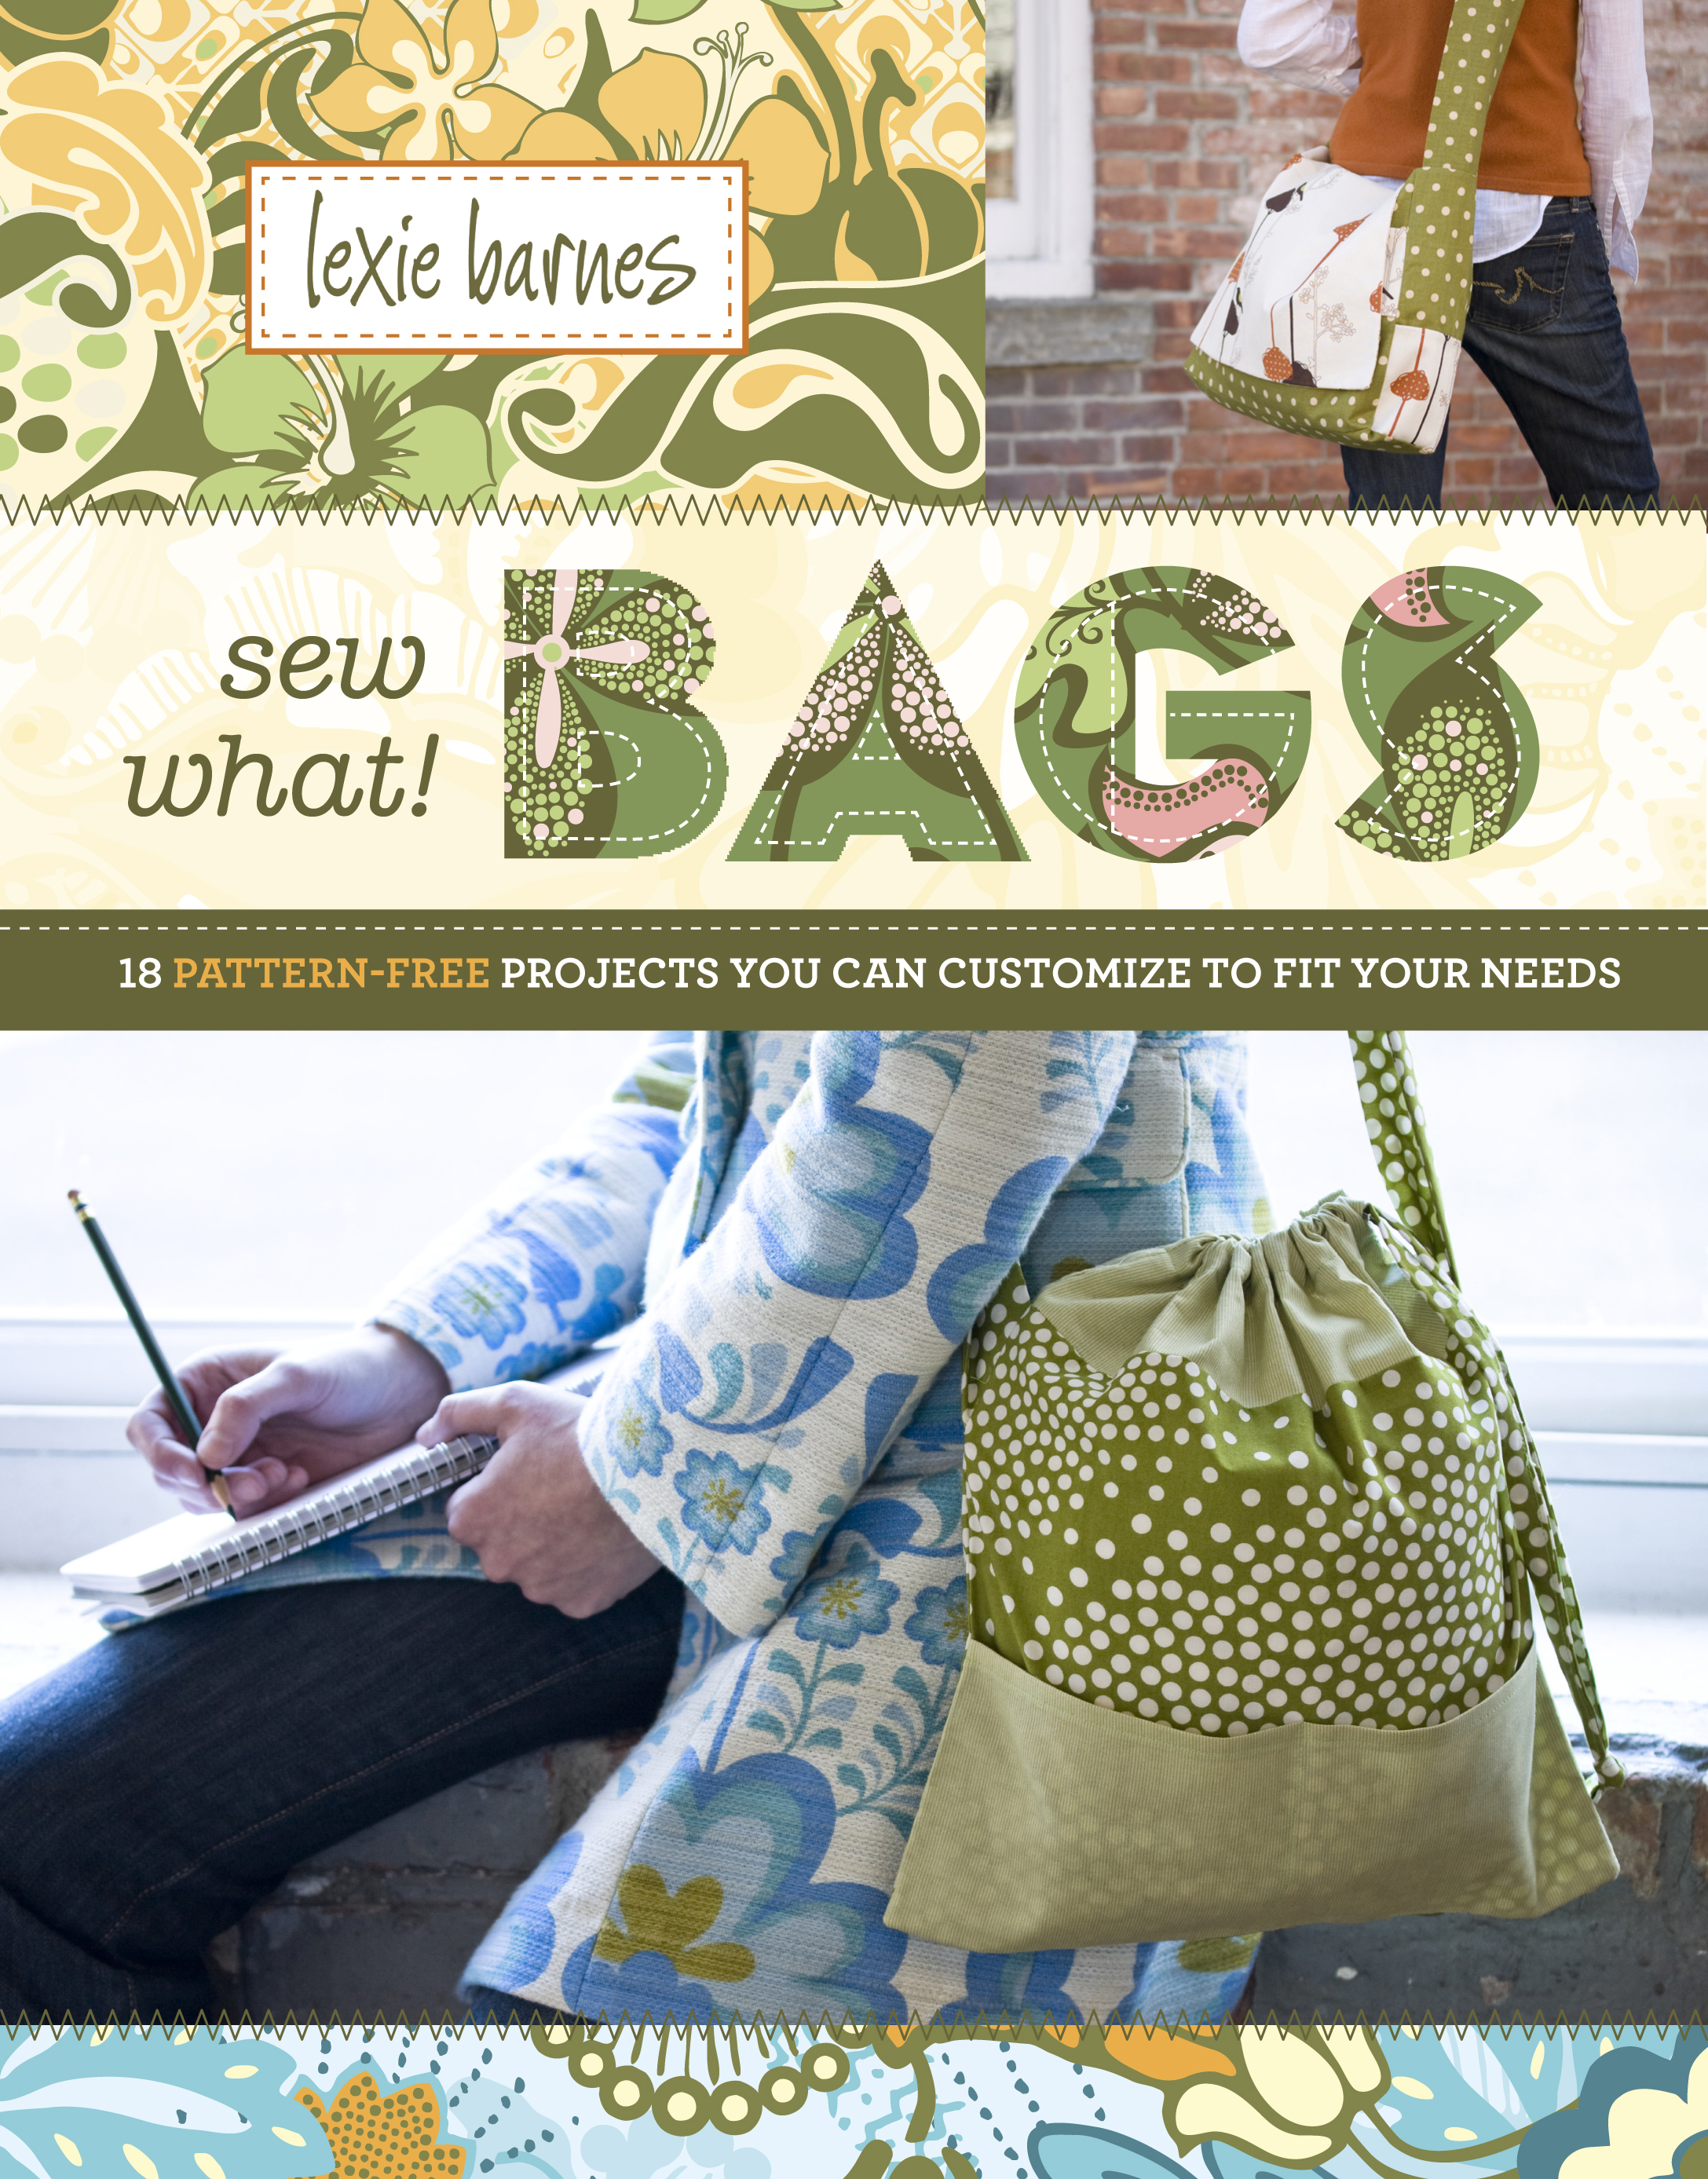 Sew What! Bags 18 Pattern-Free Projects You Can Customize to Fit Your Needs - Lexie Barnes